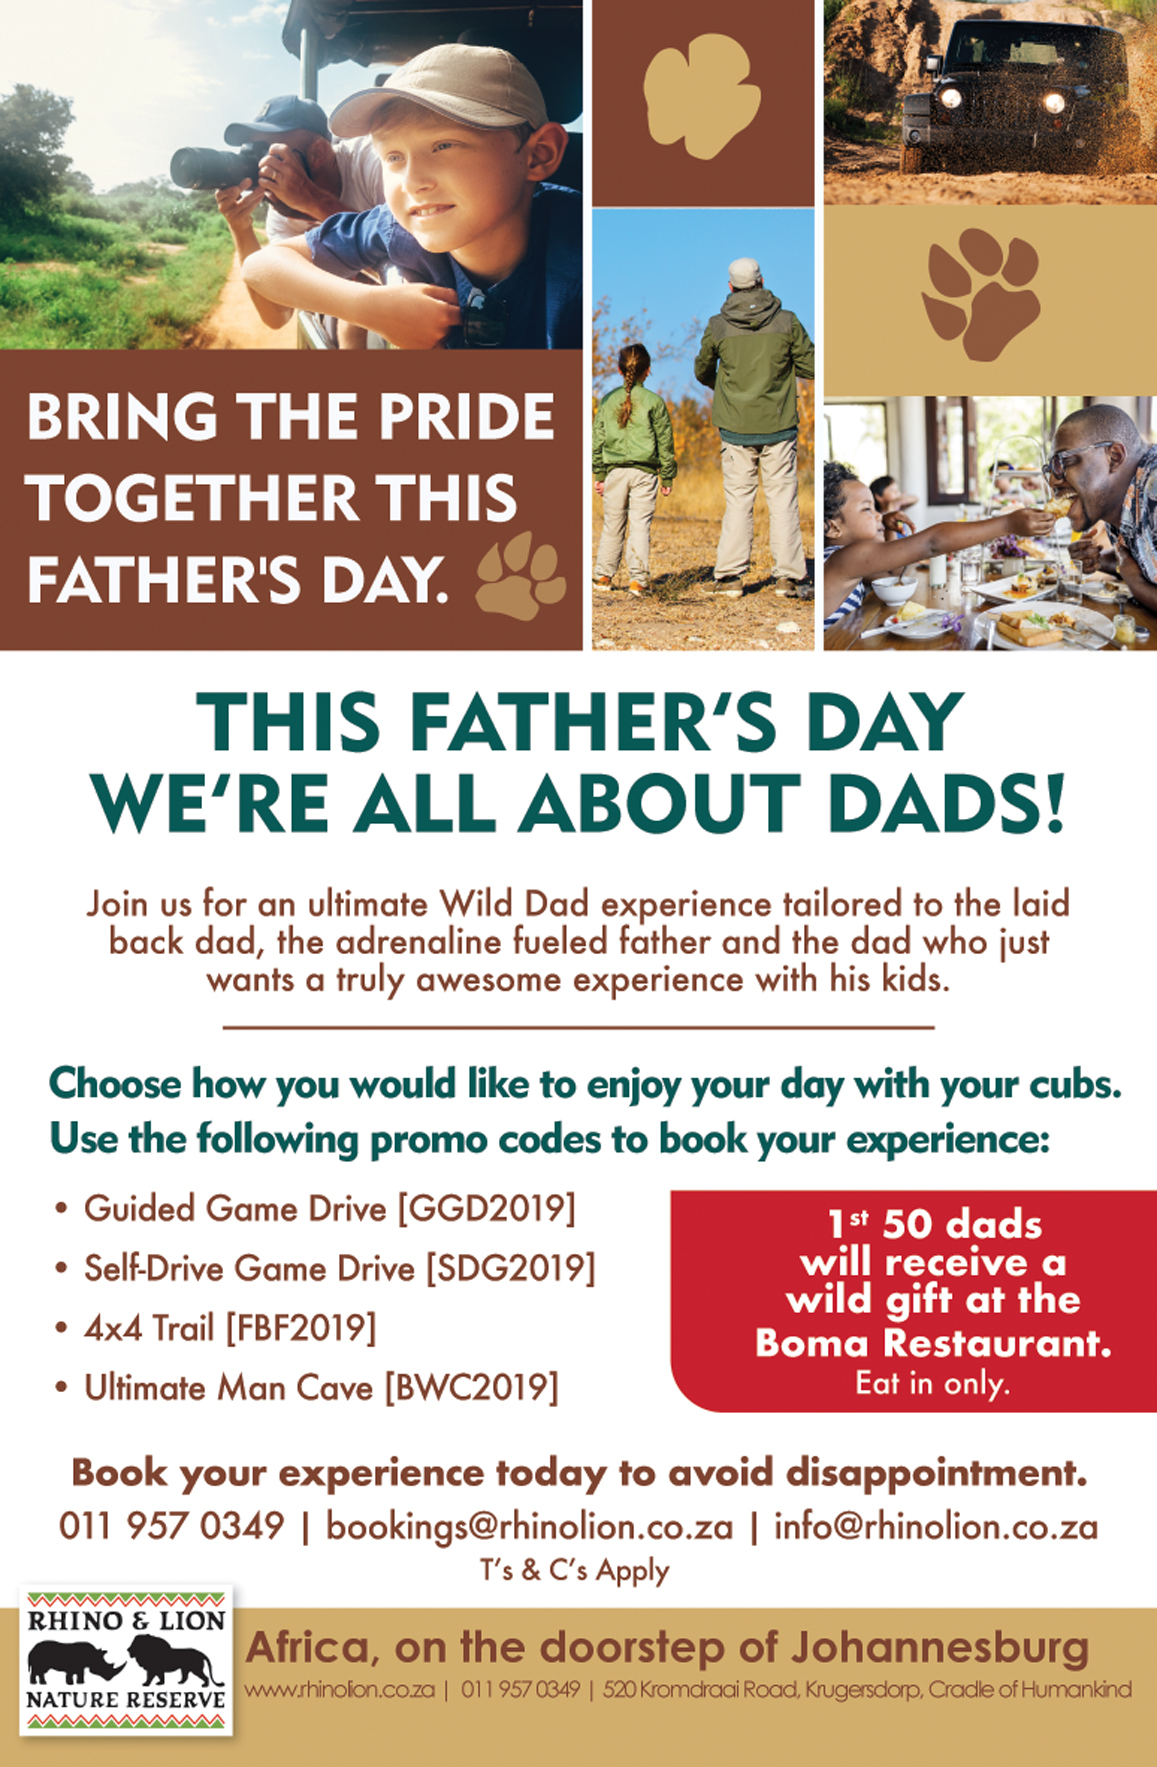 16th June 2019 This Father's Day we're all about Dads!